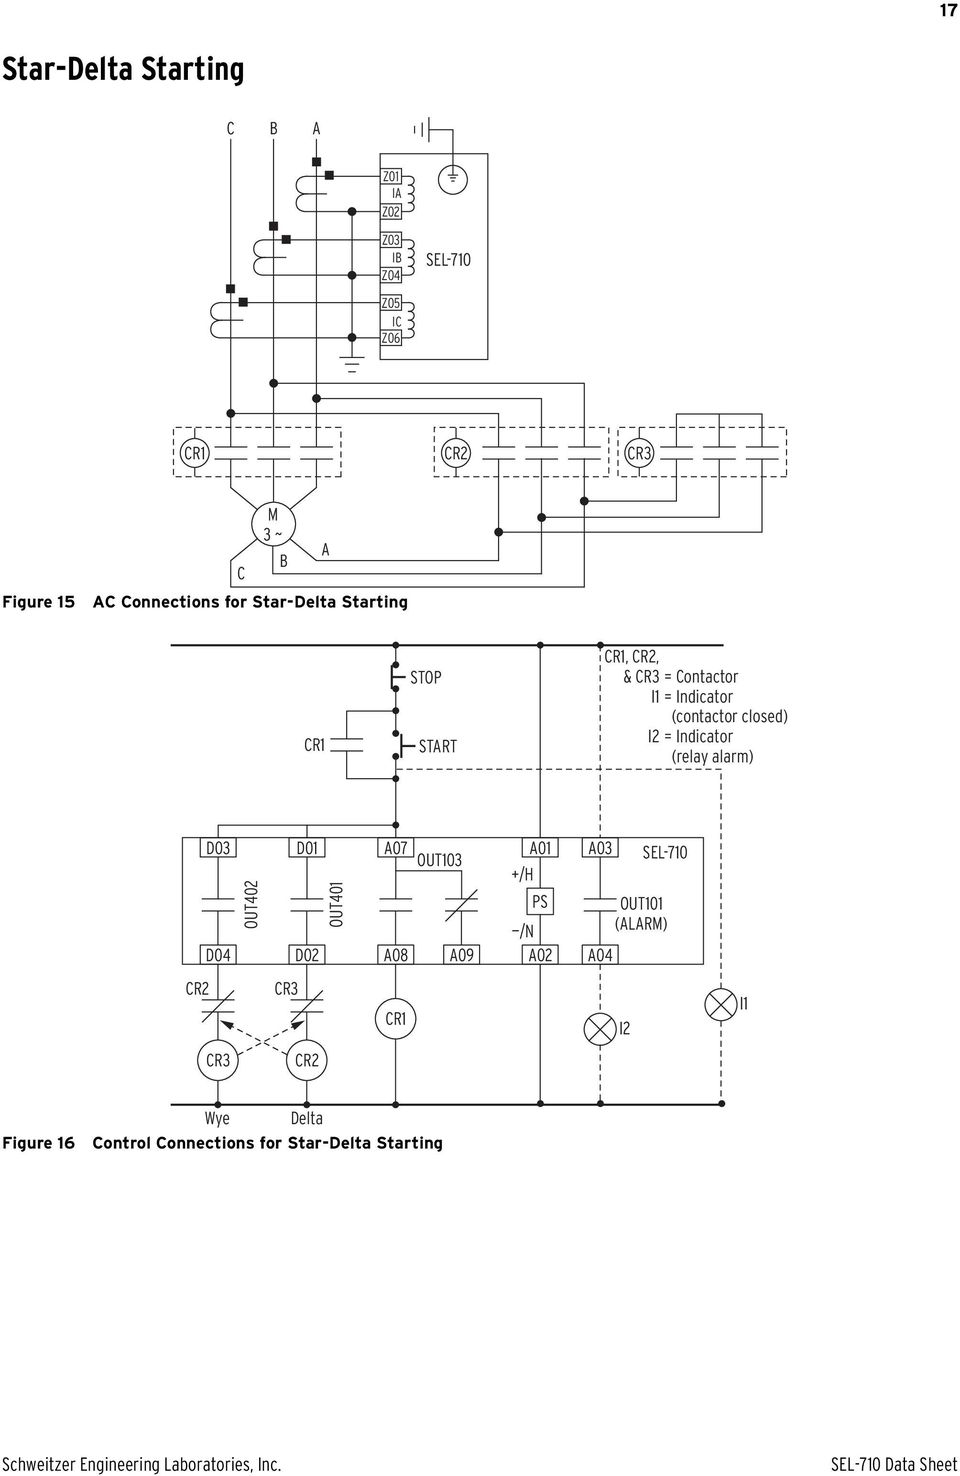 Sel 710 Motor Protection Relay Pdf Basic Concept Of Contactor Closed Indicator Alarm D03 D04 Out402 D01 D02 Out401